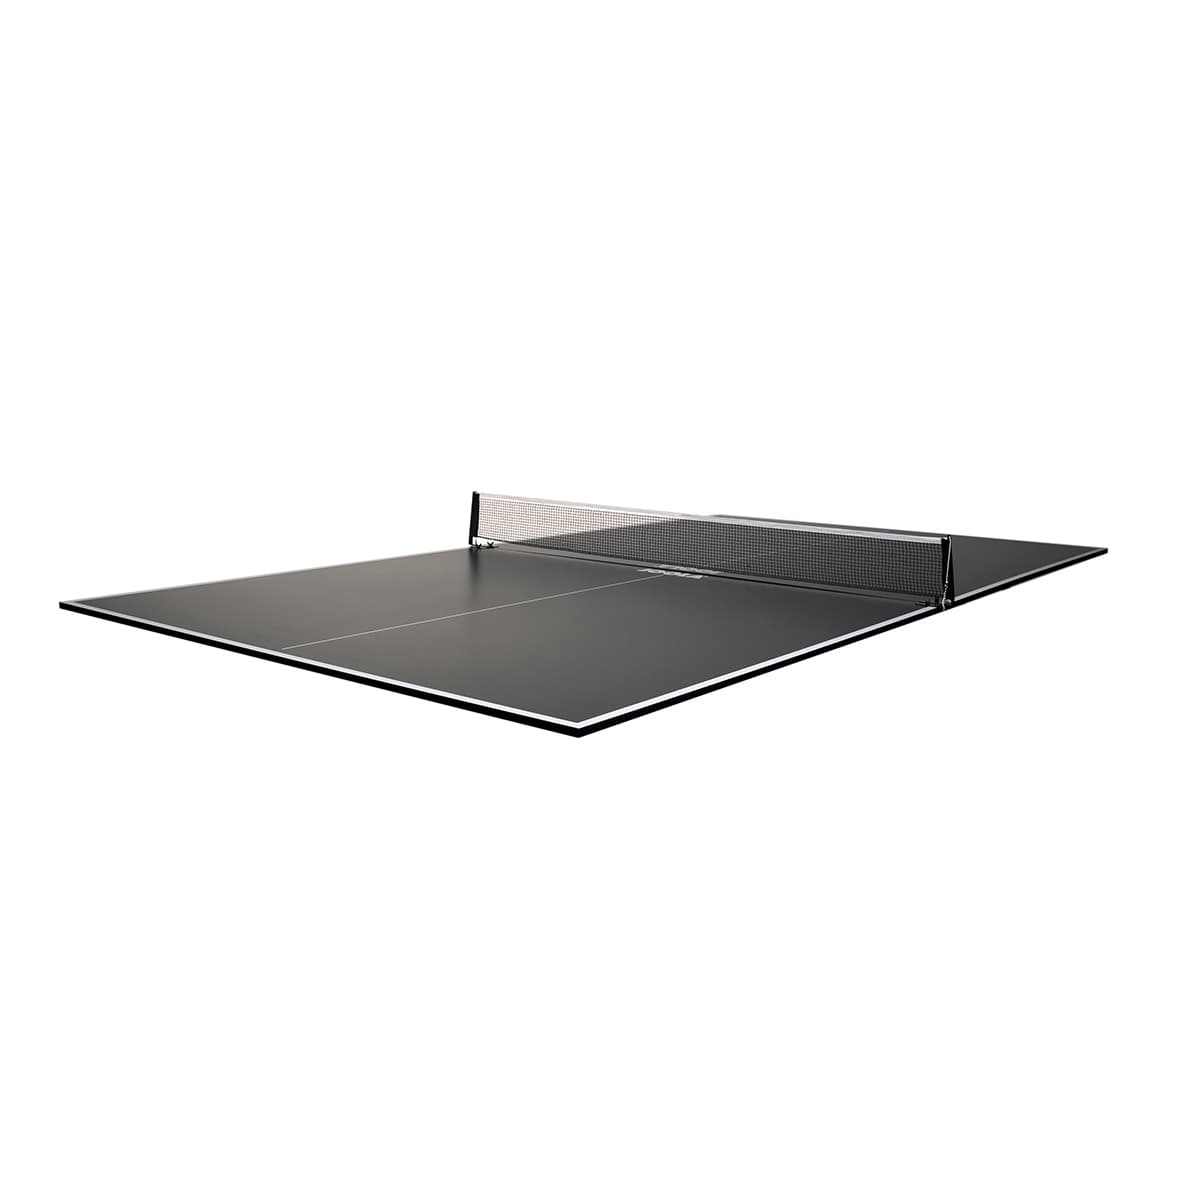 Optional Ping Pong Conversion Top